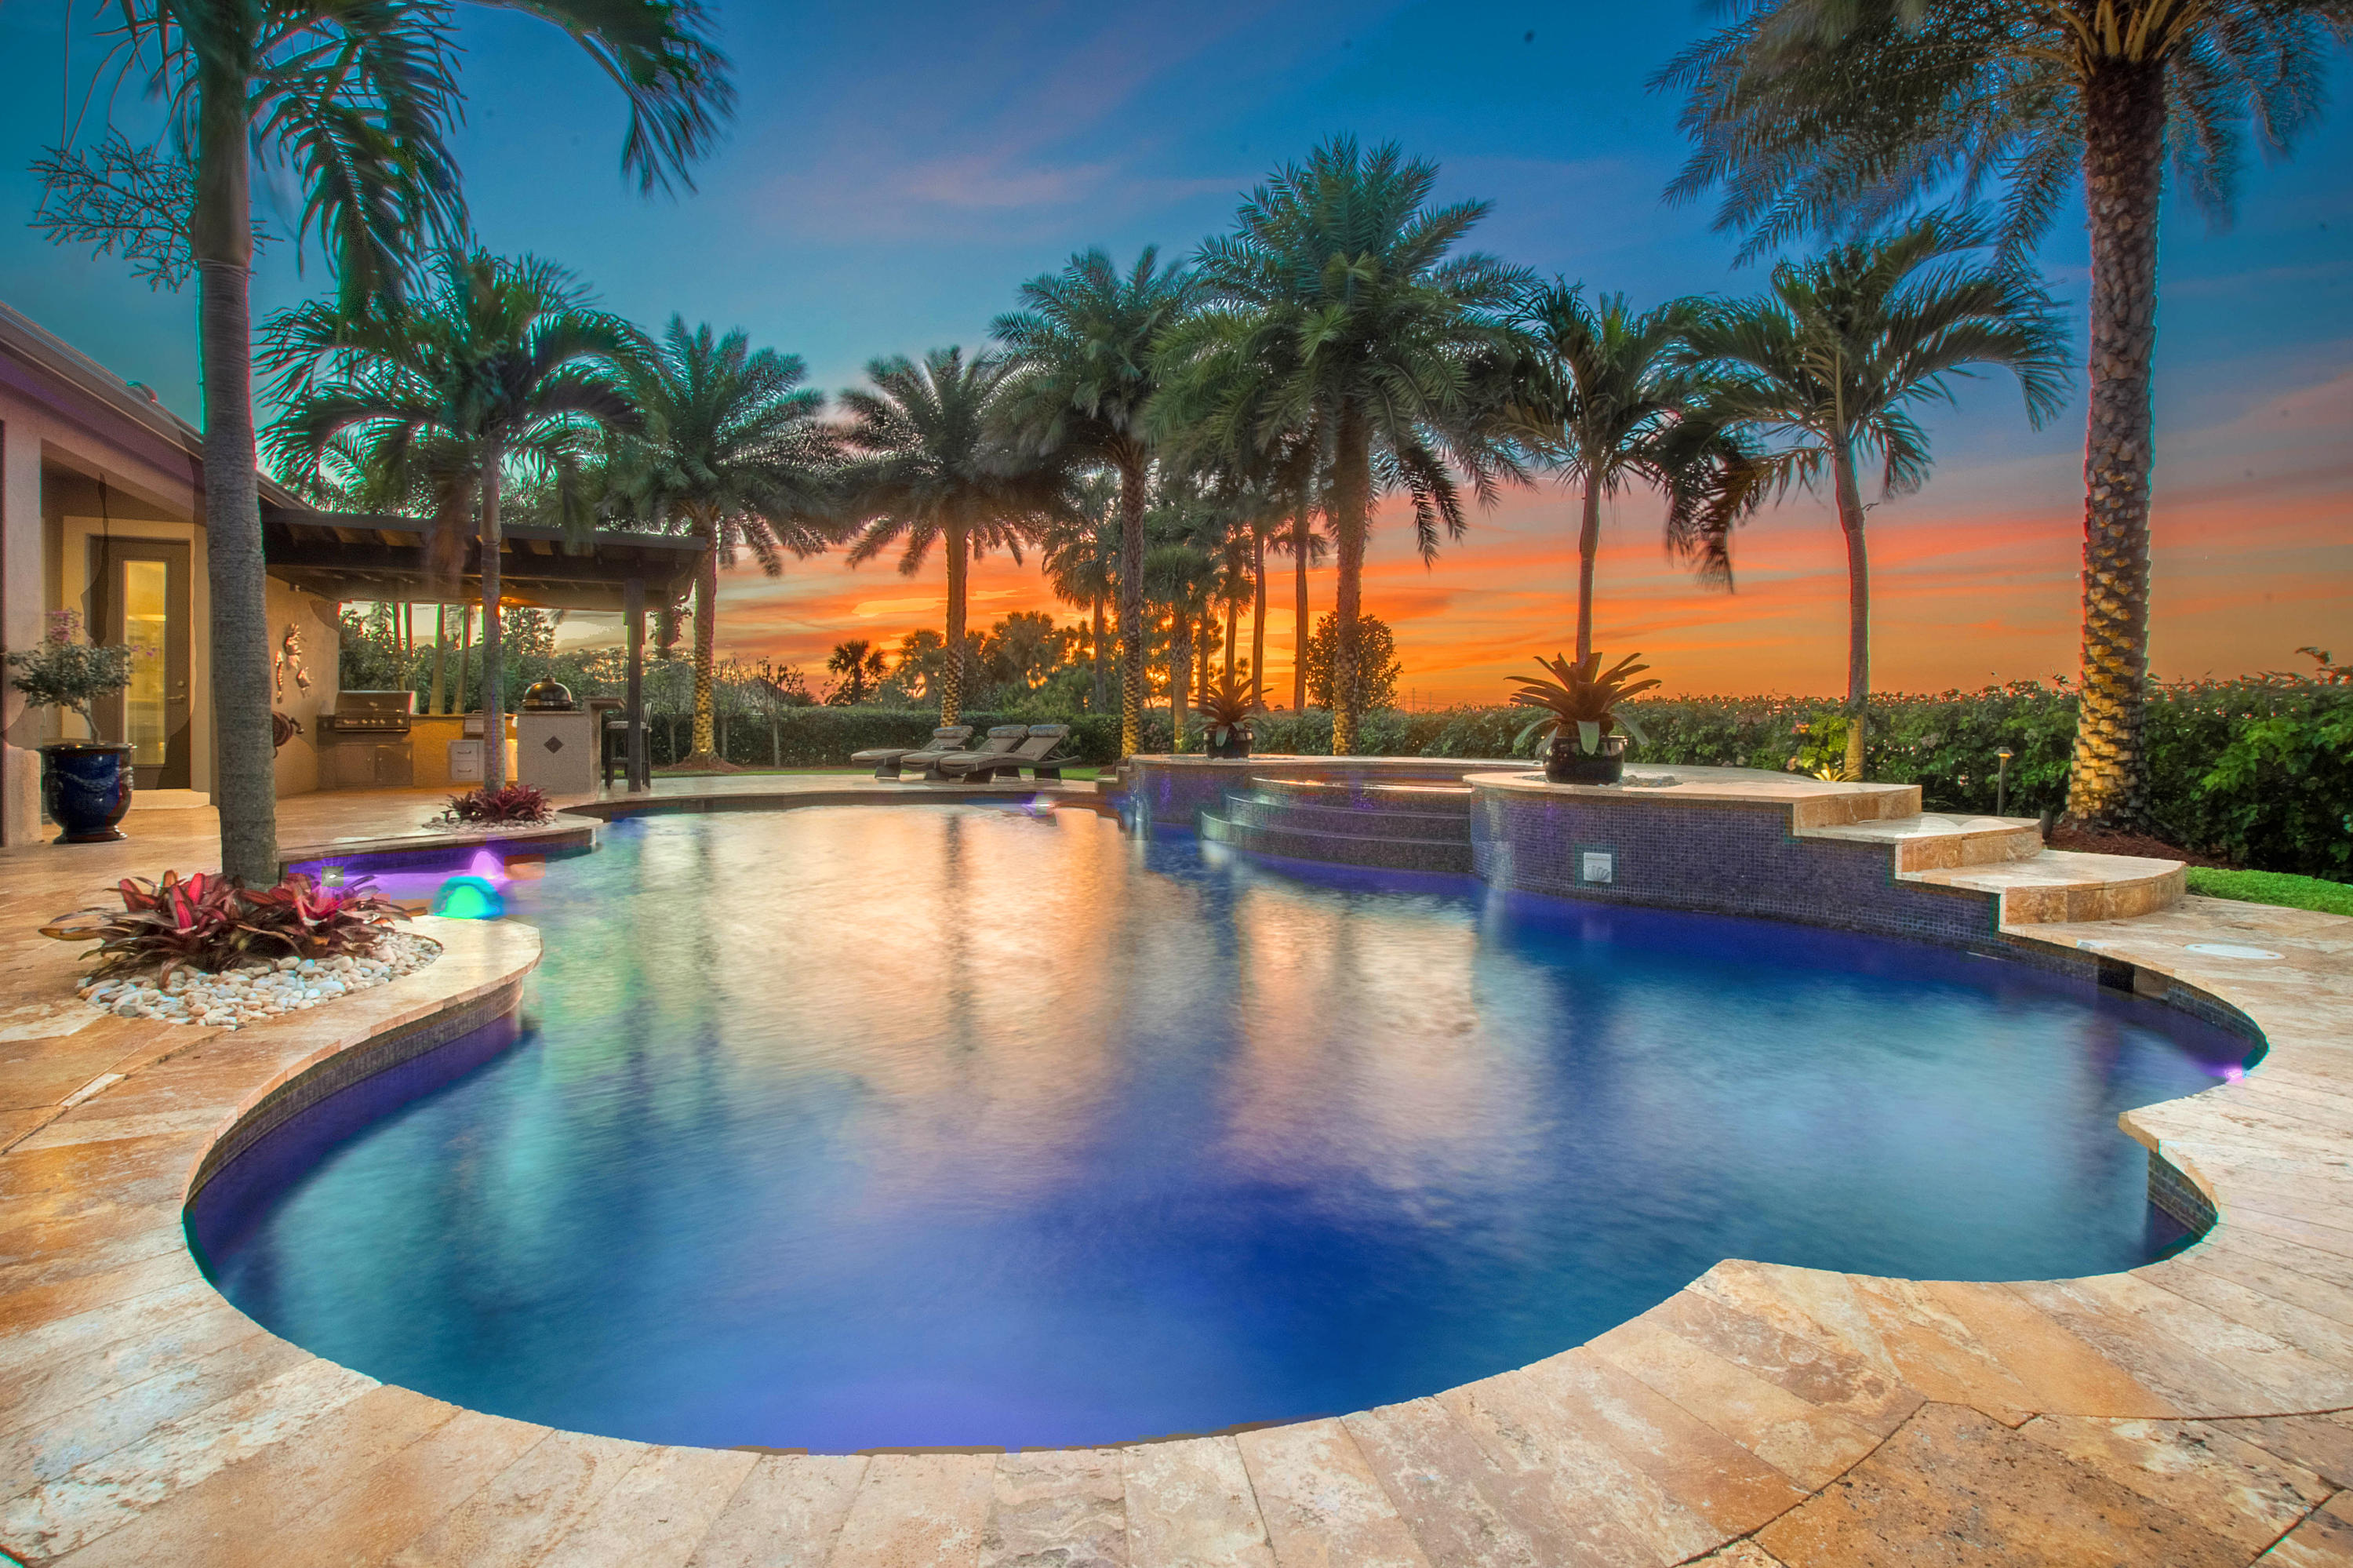 Custom Heated Salt Water Pool at Sunset